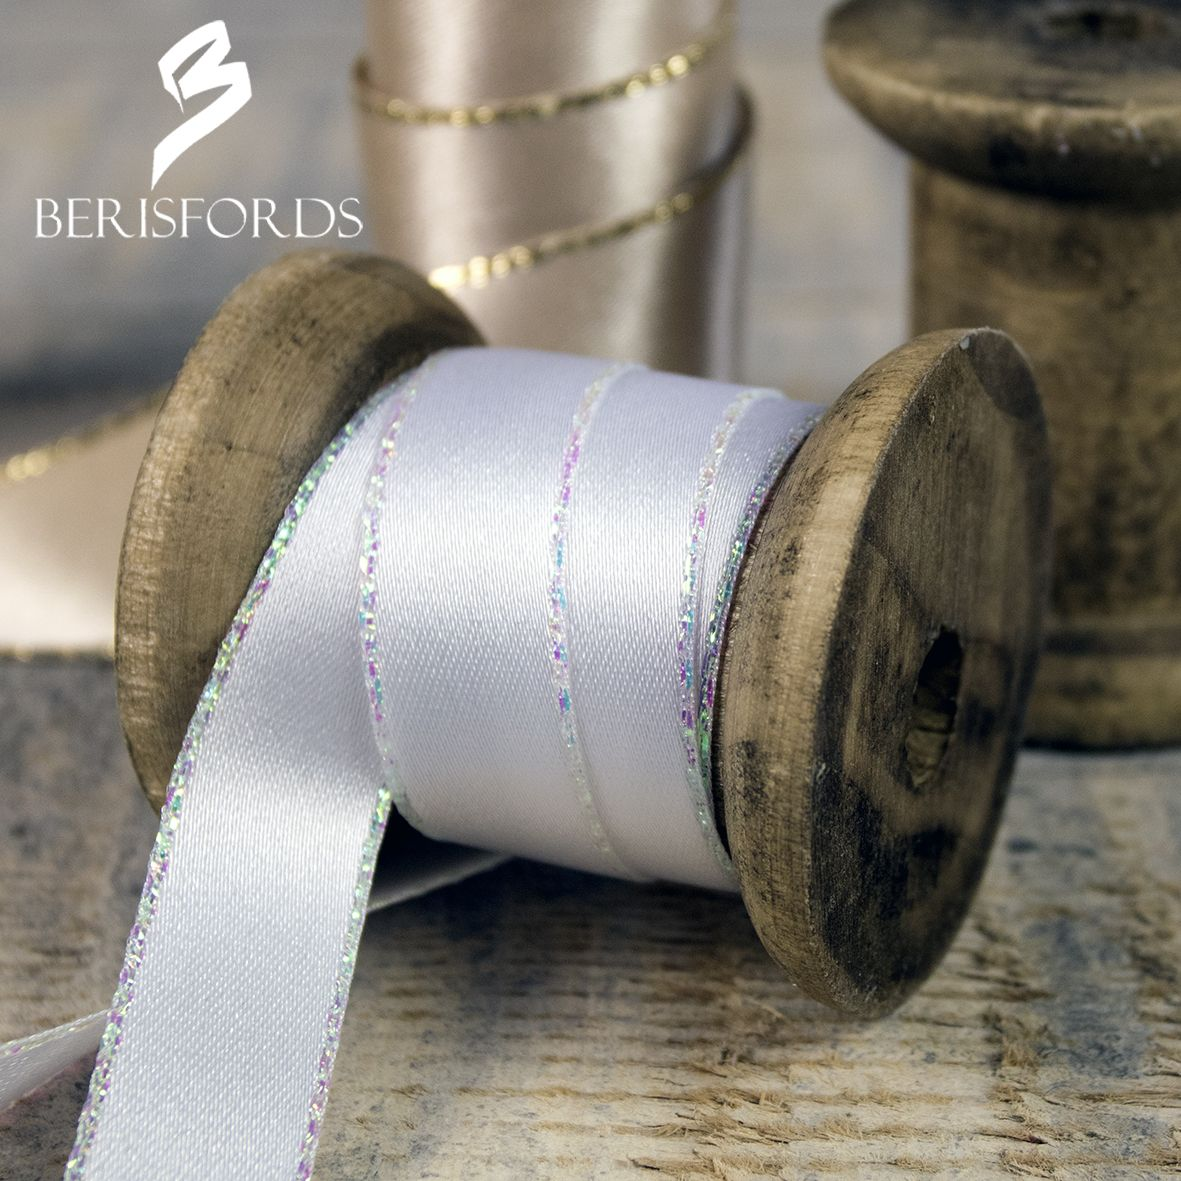 Berisford's Metallic & Iridescent Edged Satin  category image